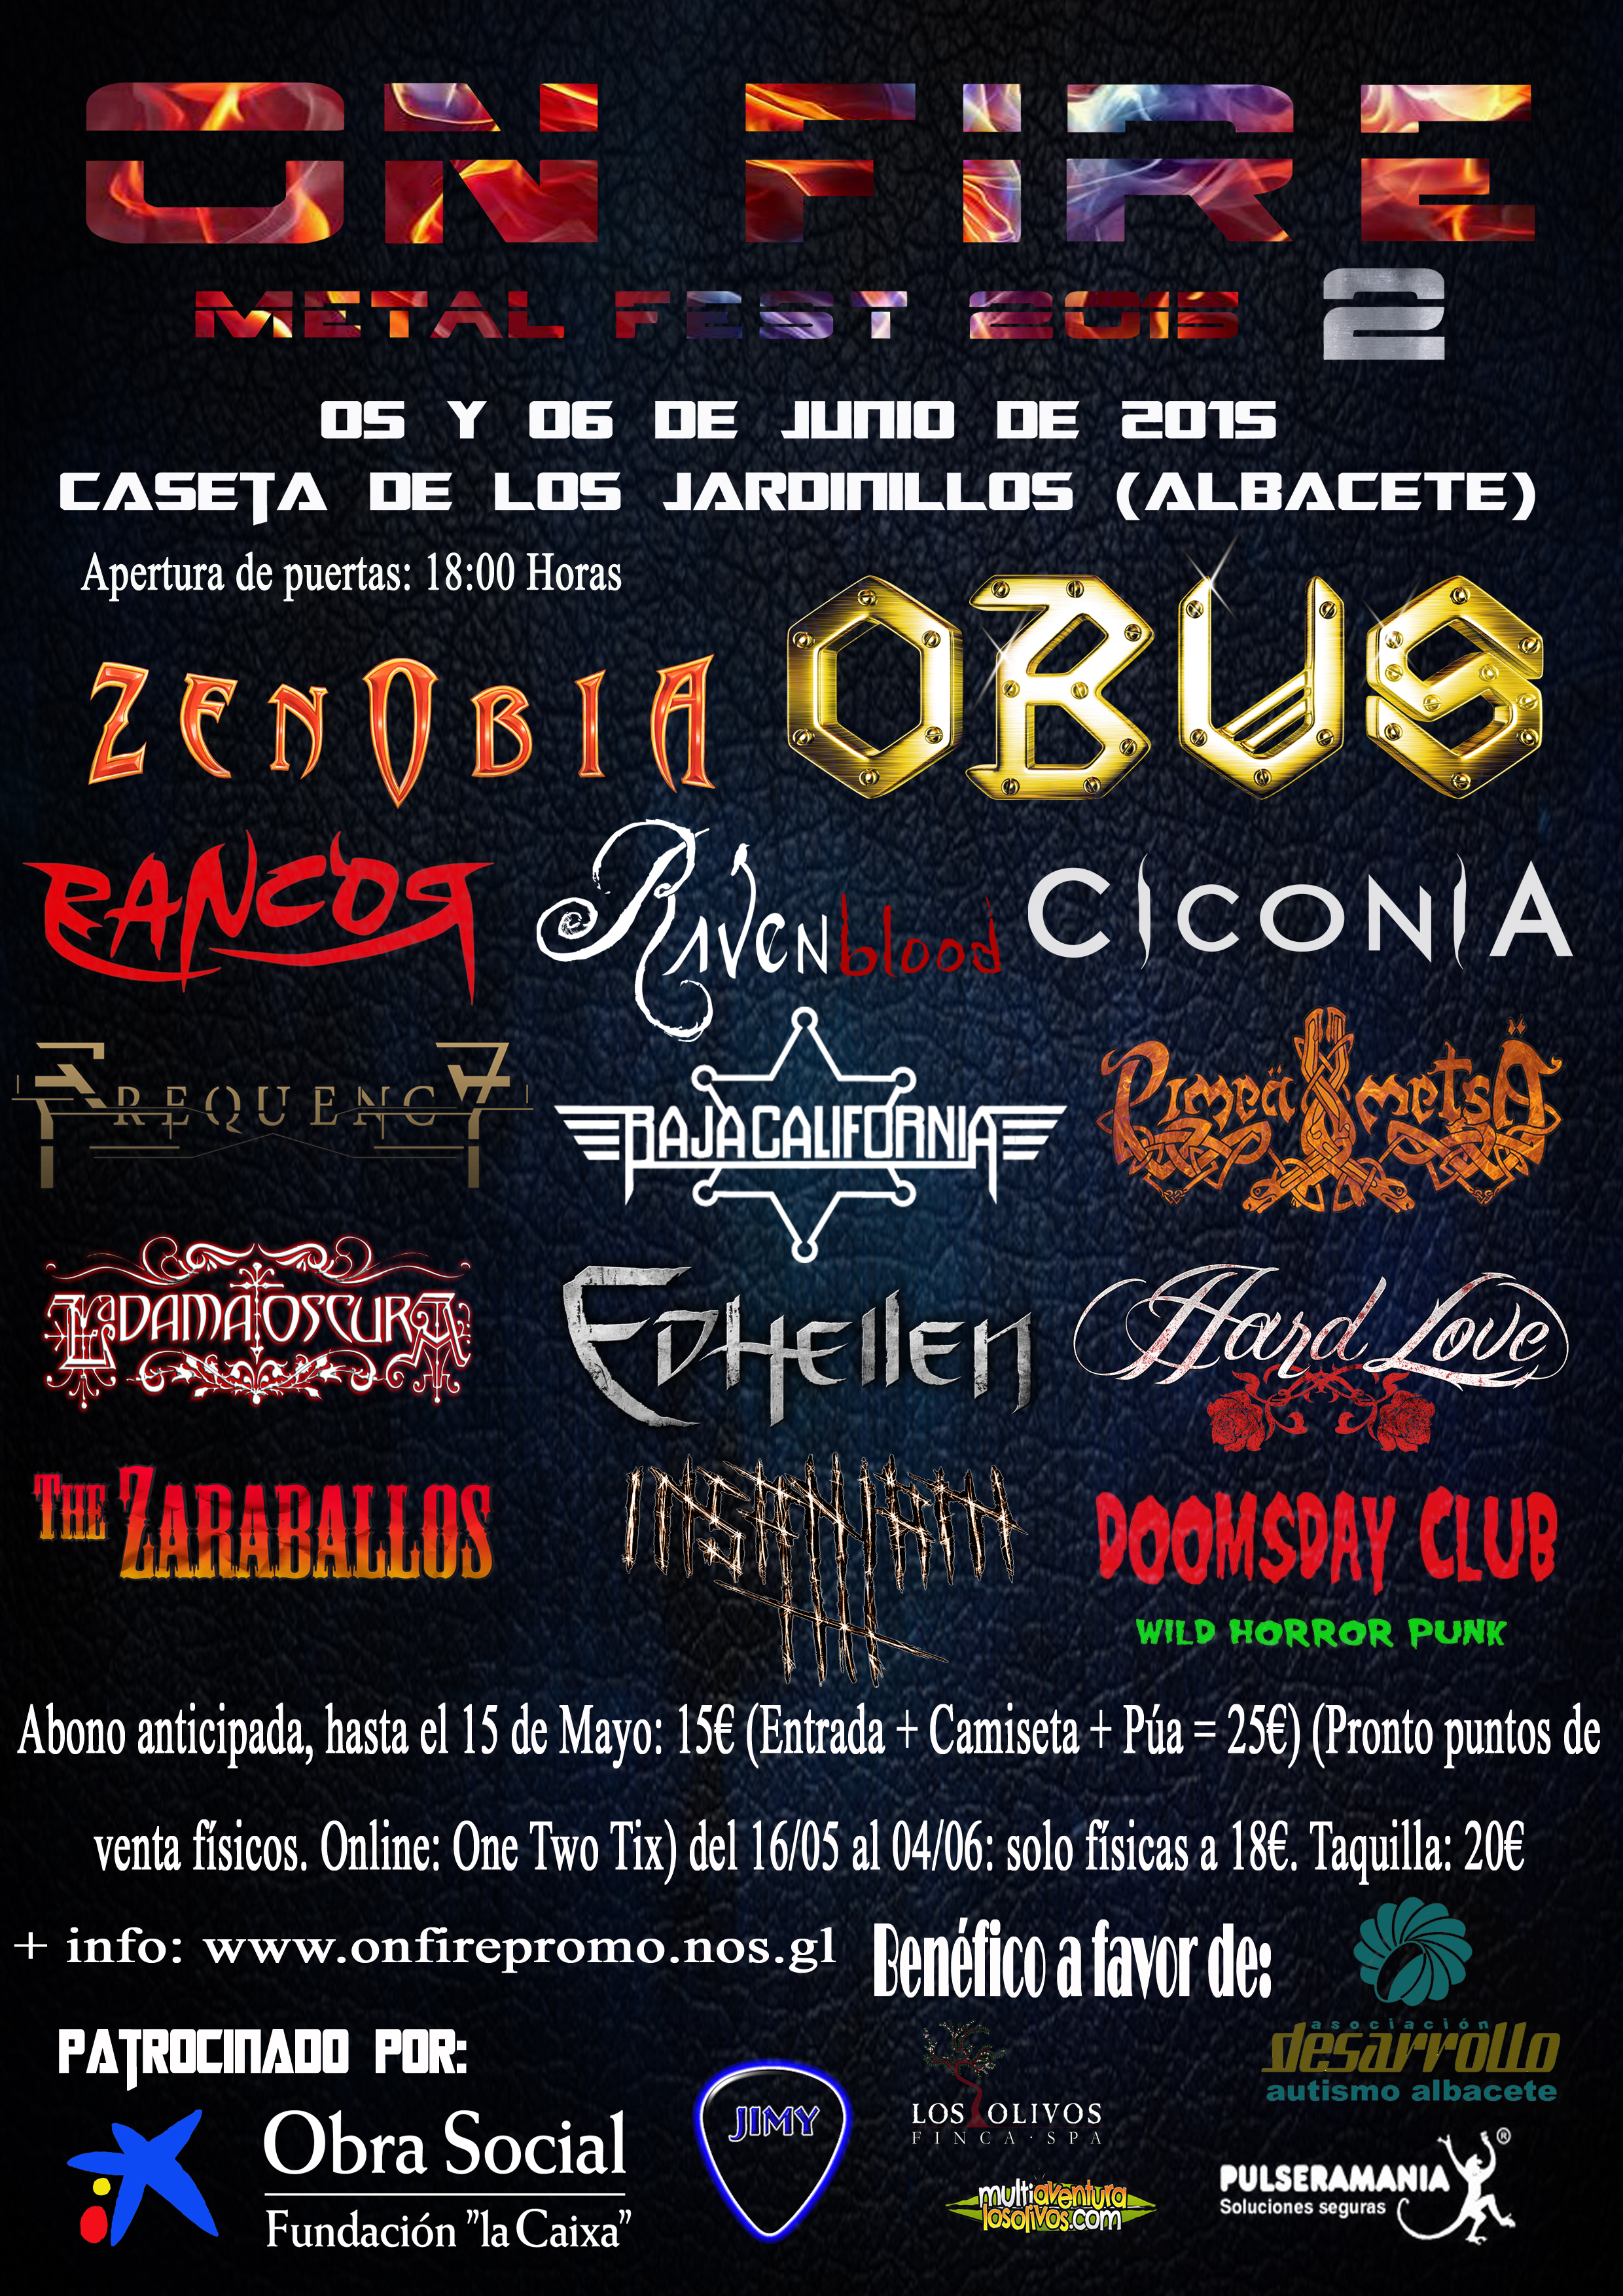 Cartel completo del ON FIRE METAL FEST 2